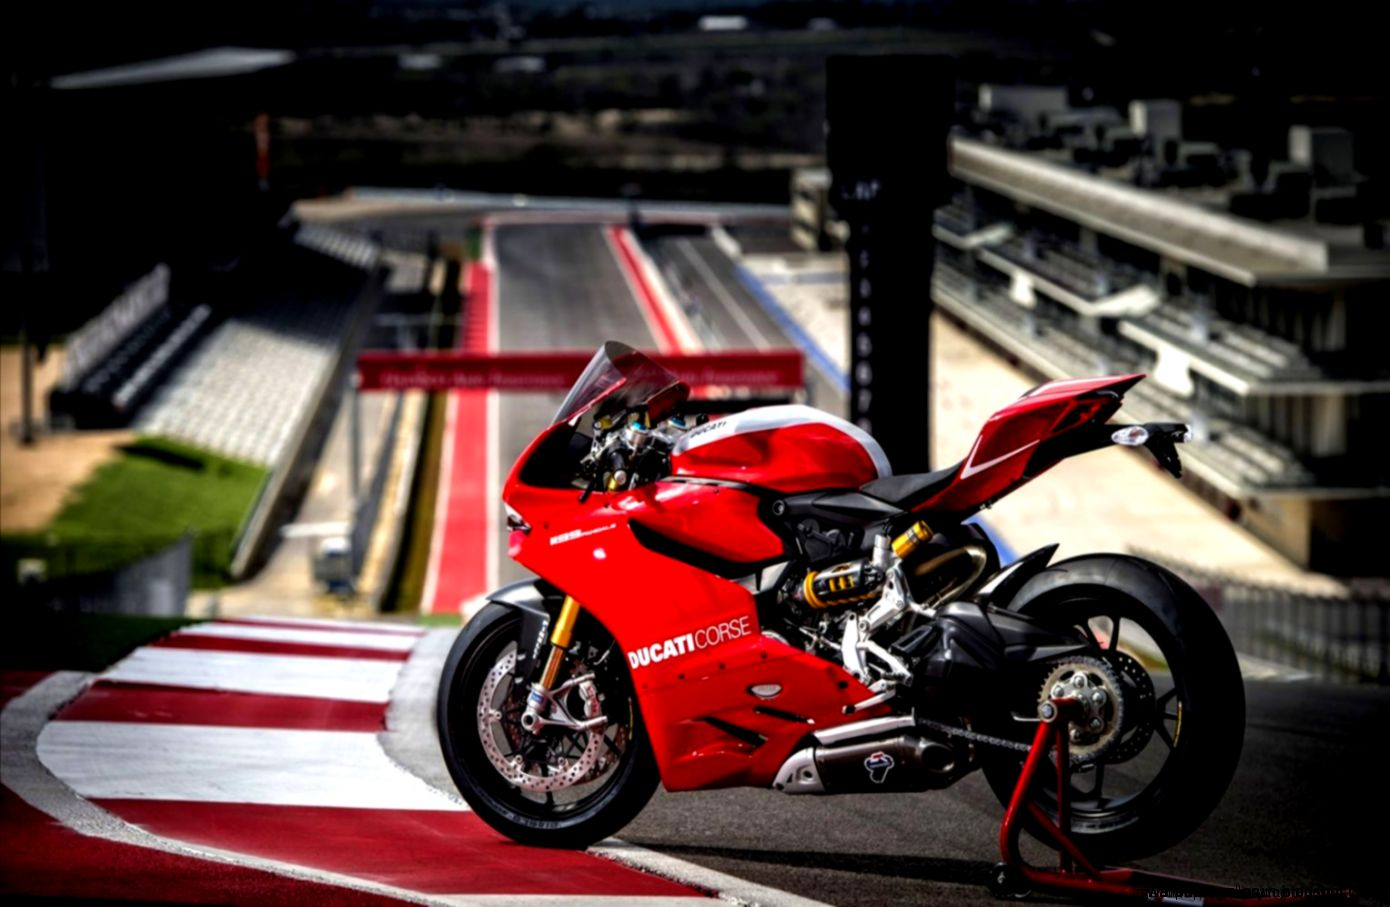 Ducati Superbike 1199 Panigale S Spesification Wallpaper Wide